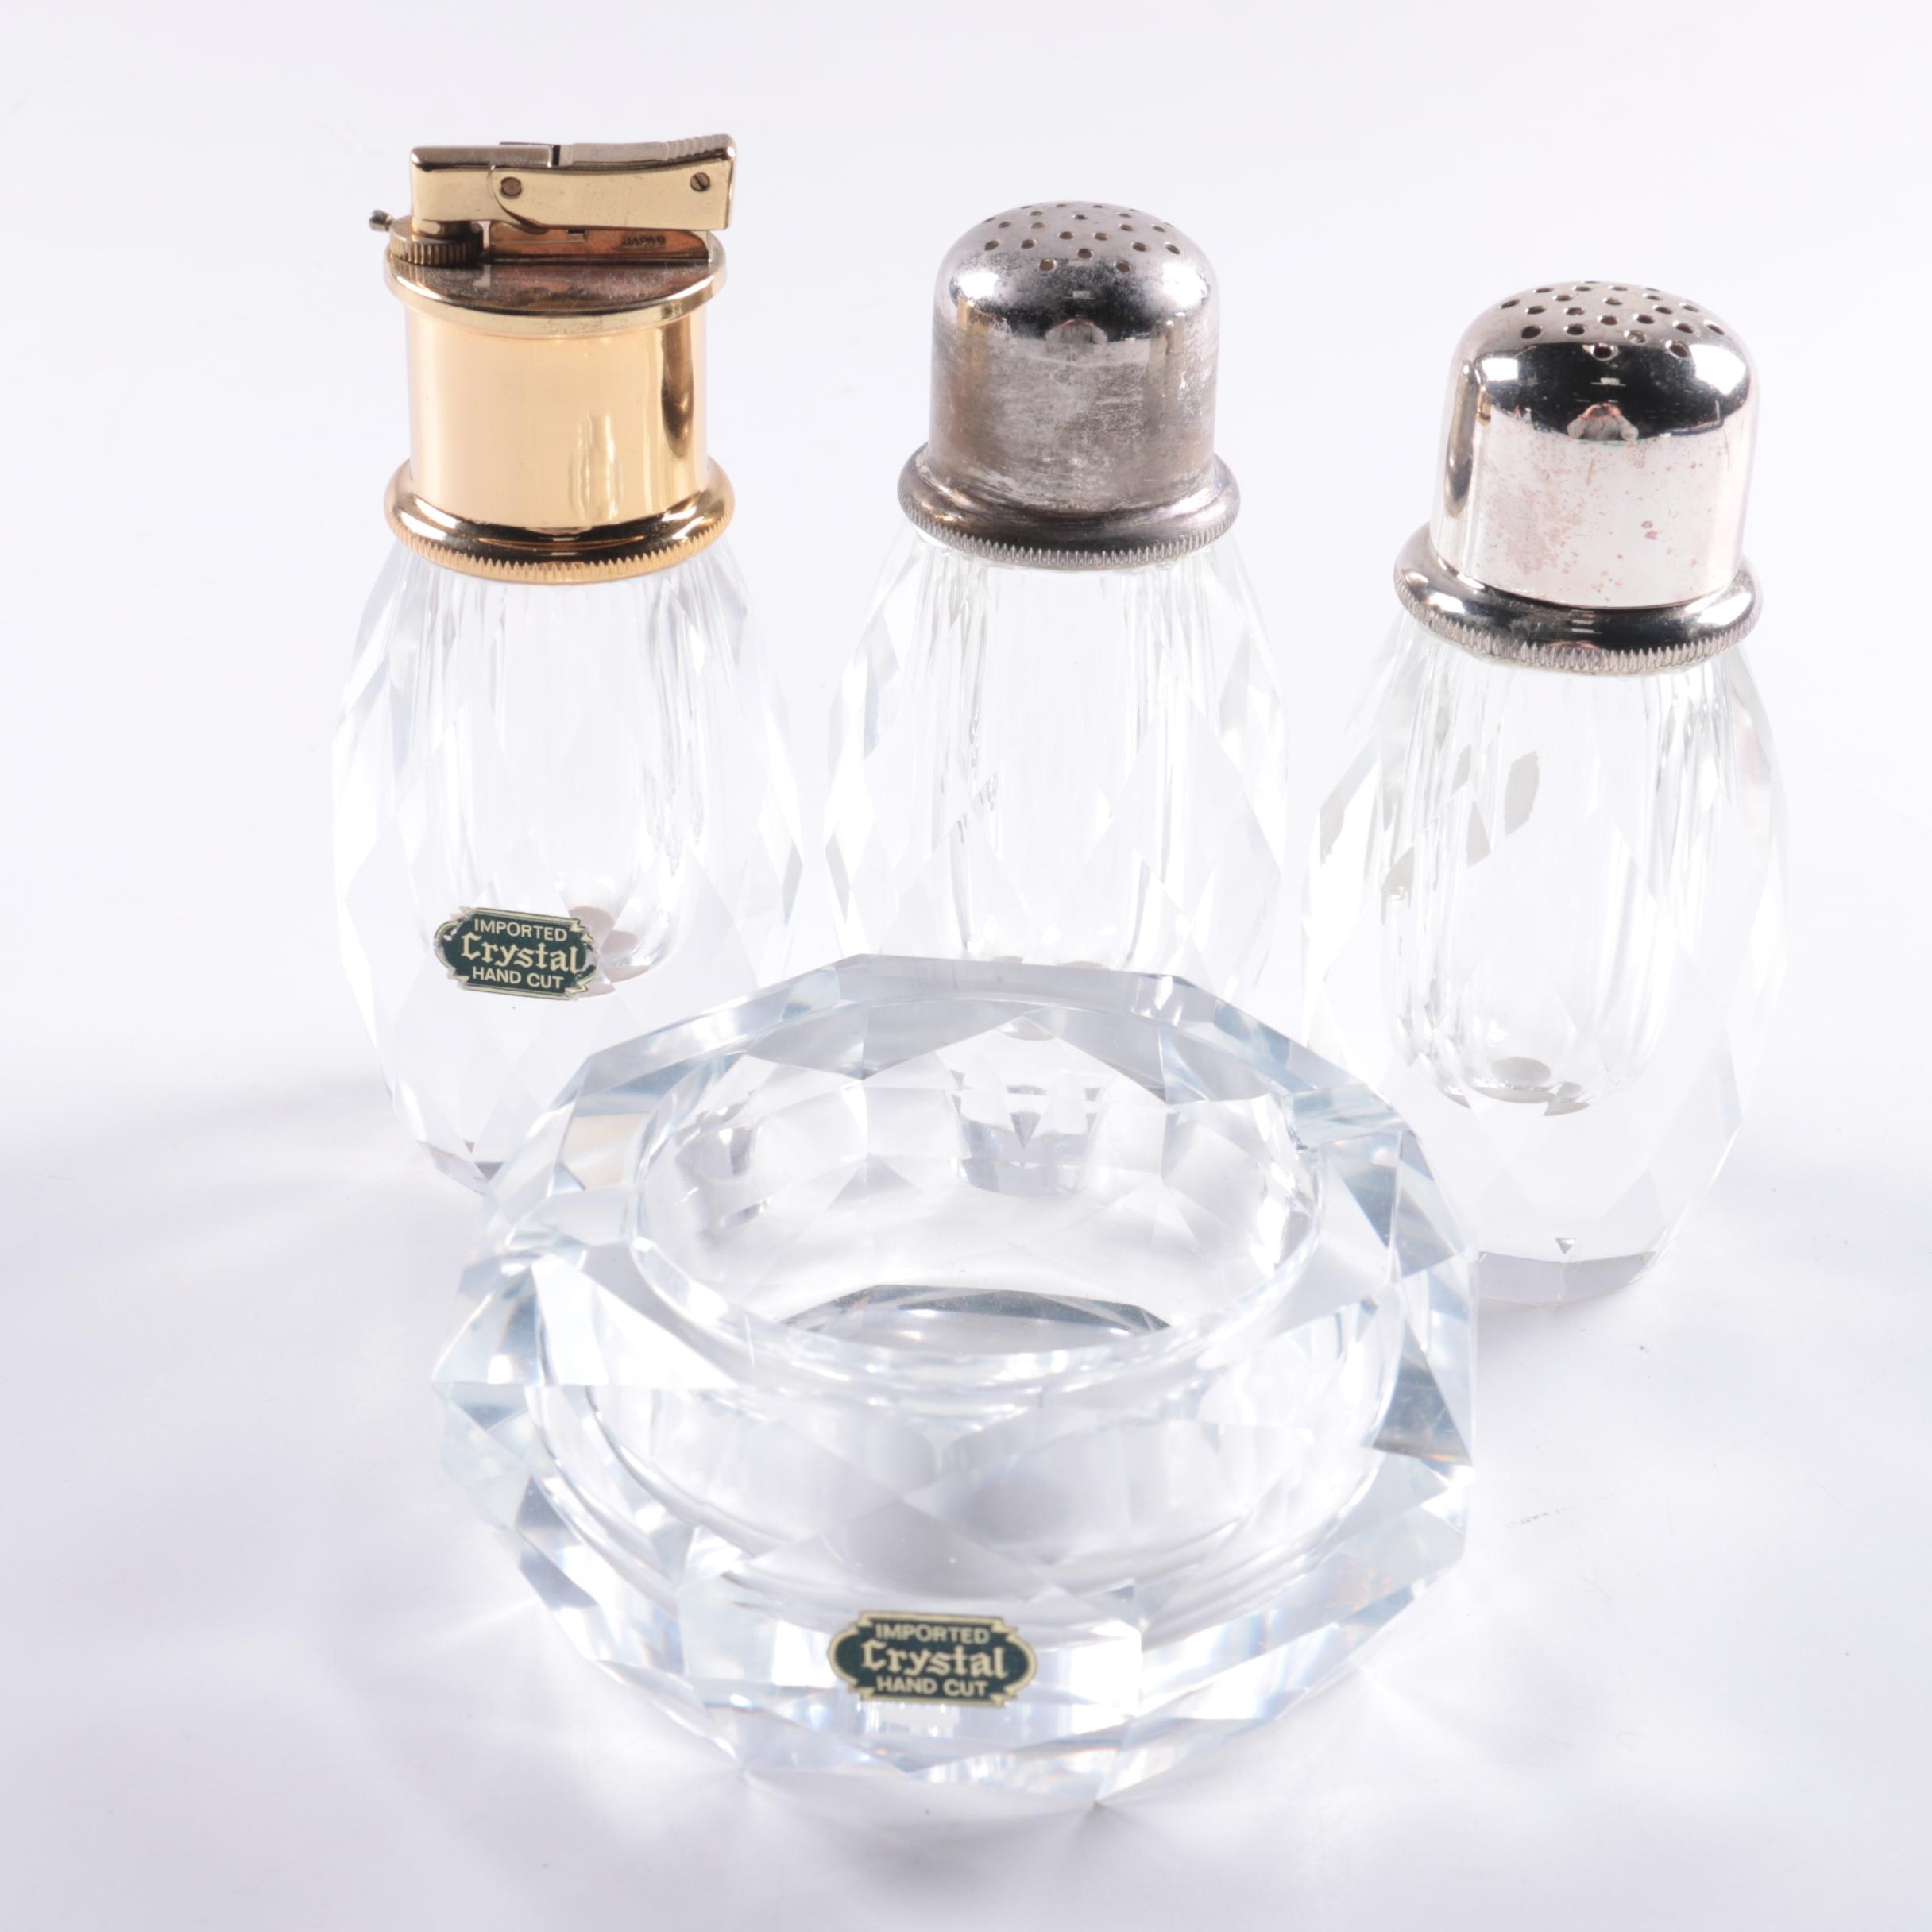 Collection of Post House Crystal Tableware